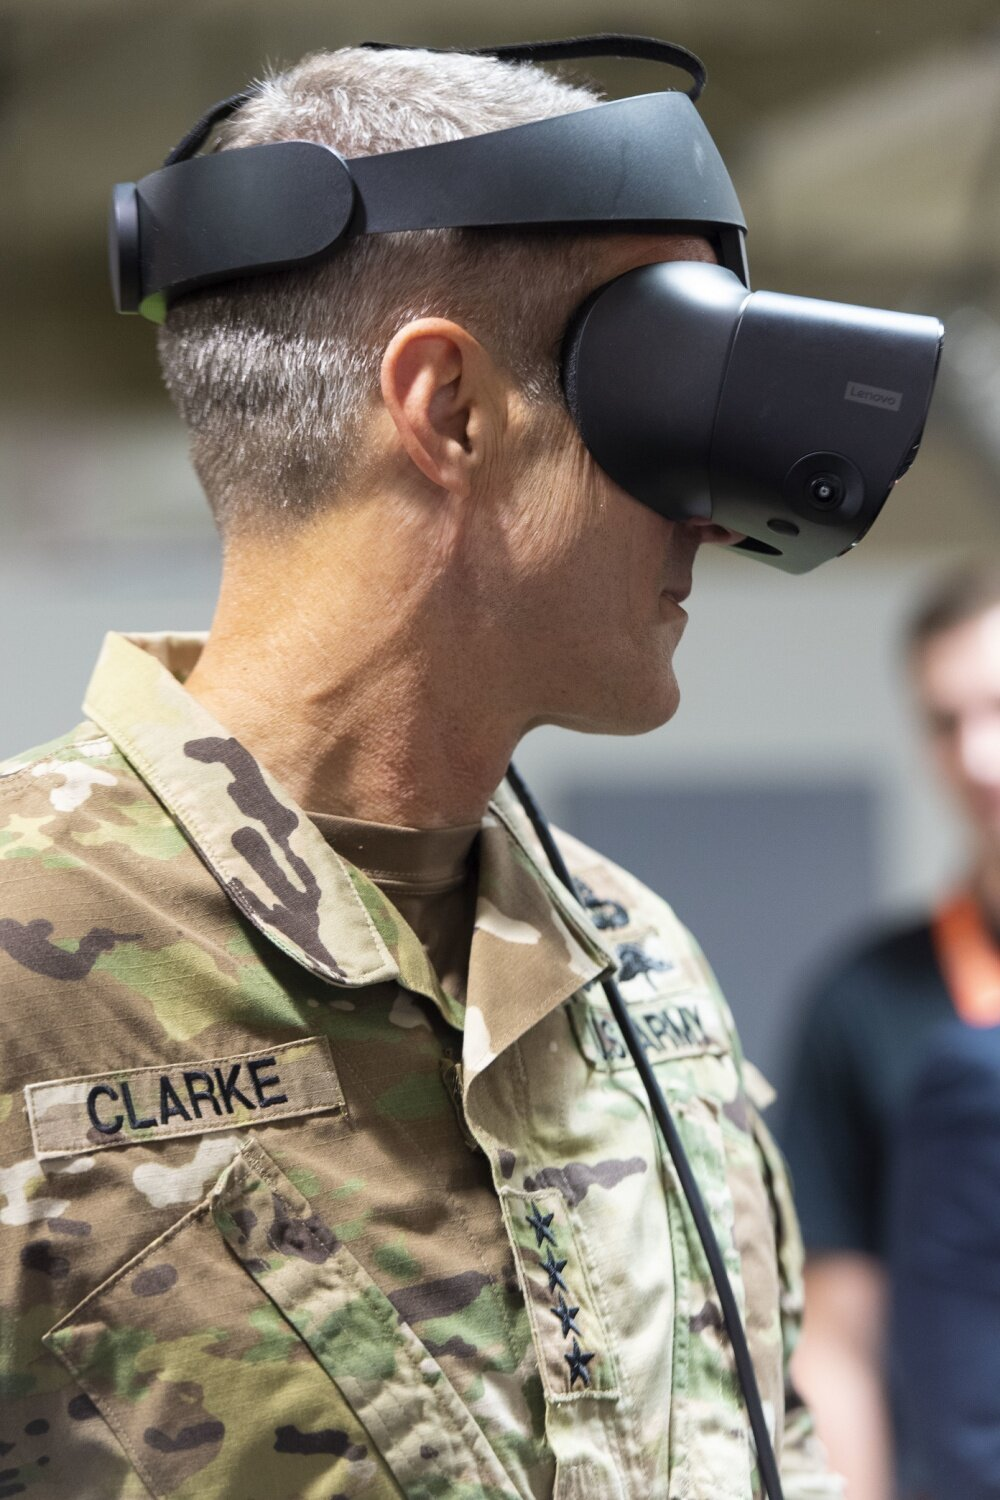 - TAMPA, FL, UNITED STATES09.25.2019Photo by Master Sgt. Barry LooU.S. Special Operations CommandGen. Richard D. Clarke, commander, U.S. Special Operations Command, samples virtual reality technology before the USSOCOM Data Engineering Lab grand opening ceremony in Tampa, Fla., Sept. 25, 2019. The lab is an open-concept work environment and is the Command's outpost of a larger DoD modernization eco-system, whose goal is to foster collaboration between Special Operations Forces professionals, data scientists, data architects, software developers, systems integrators and technologists. (Photo by U.S. Air Force Master Sgt. Barry Loo)